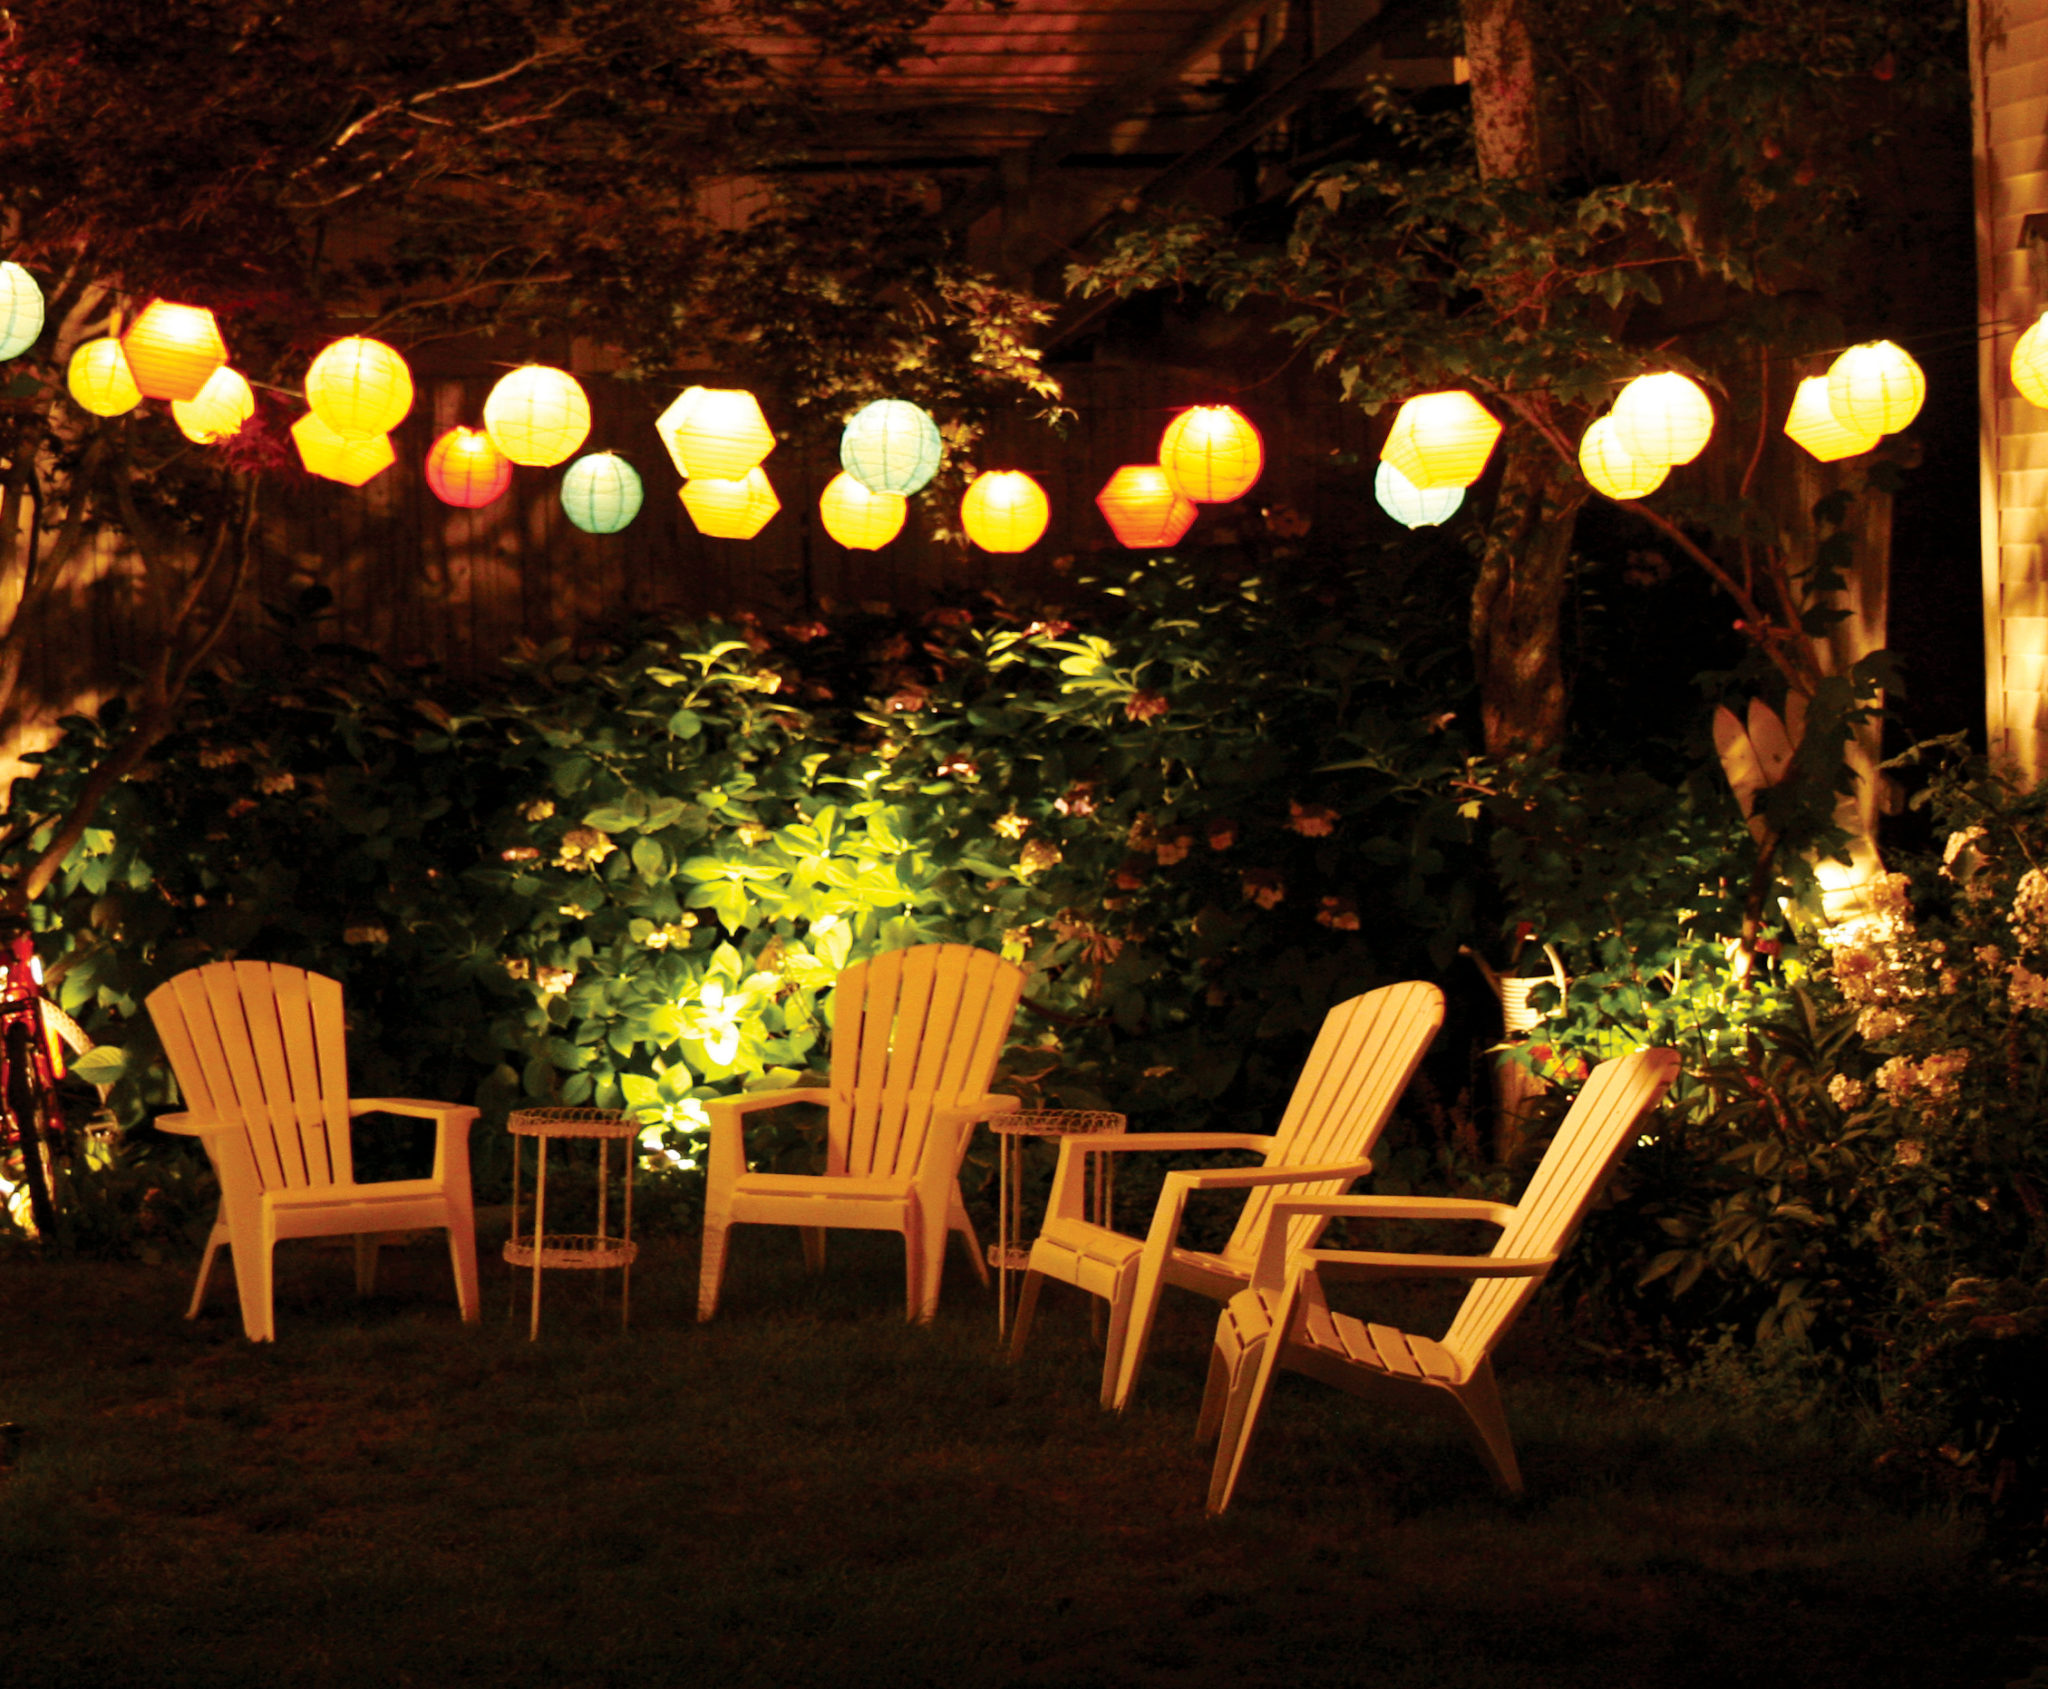 String lights that capture the attention